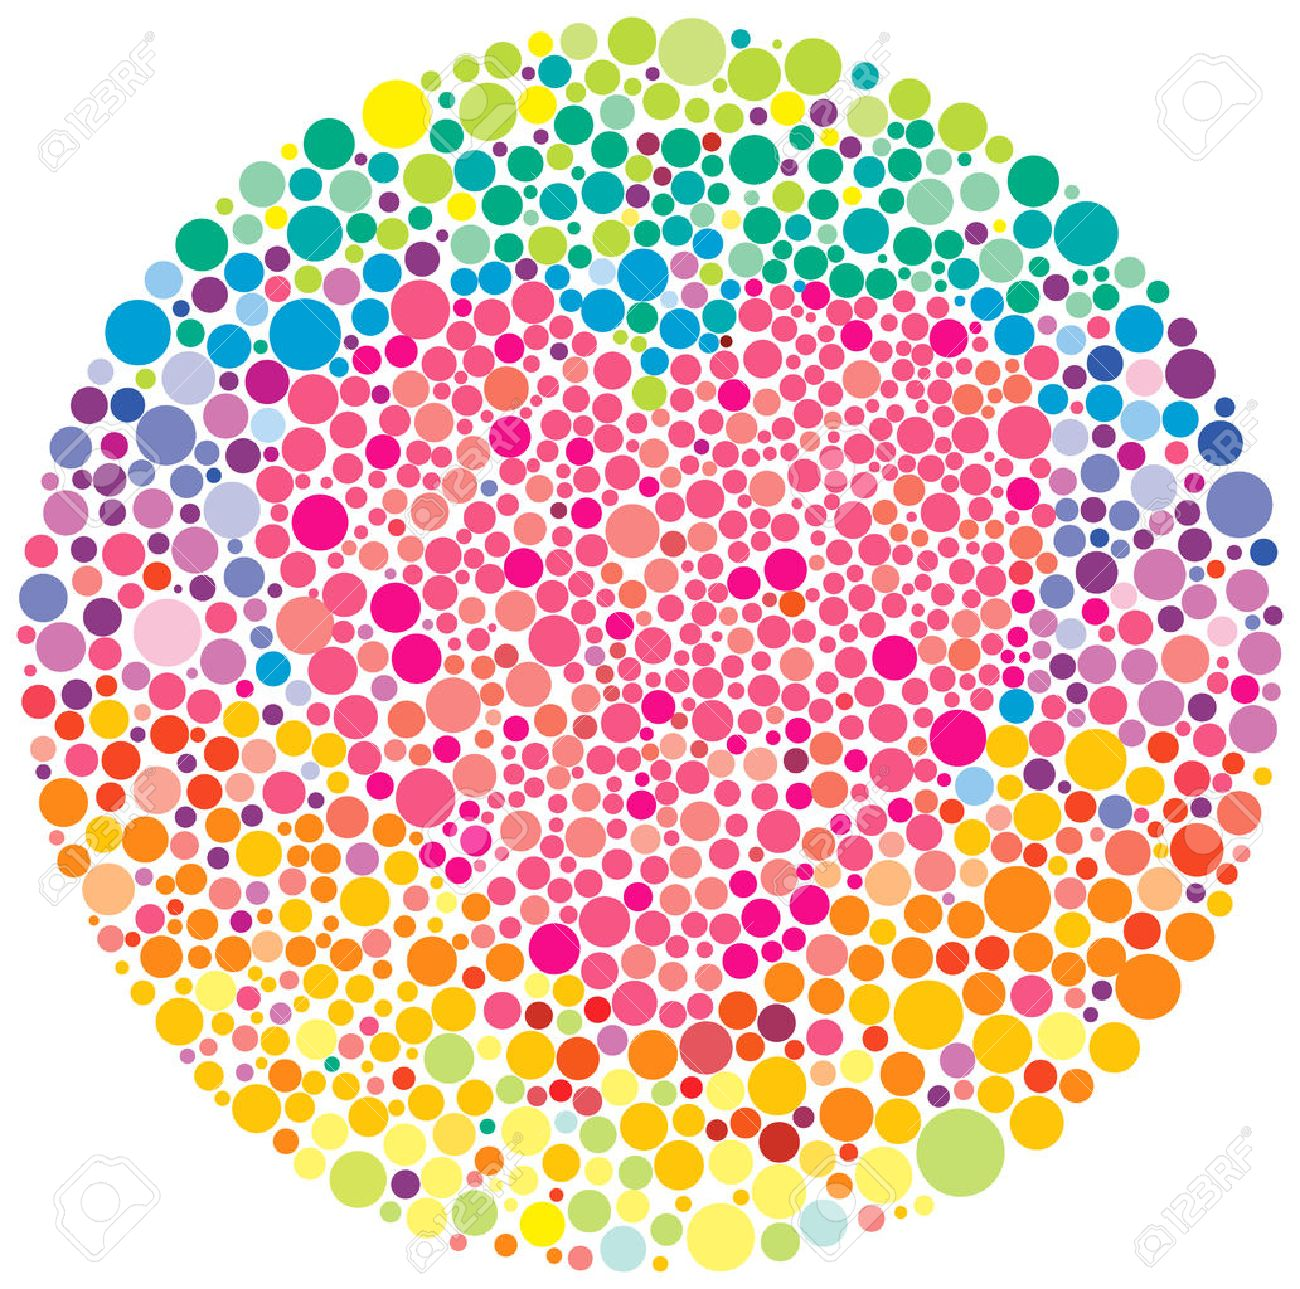 color blindness test royalty free cliparts vectors and stock